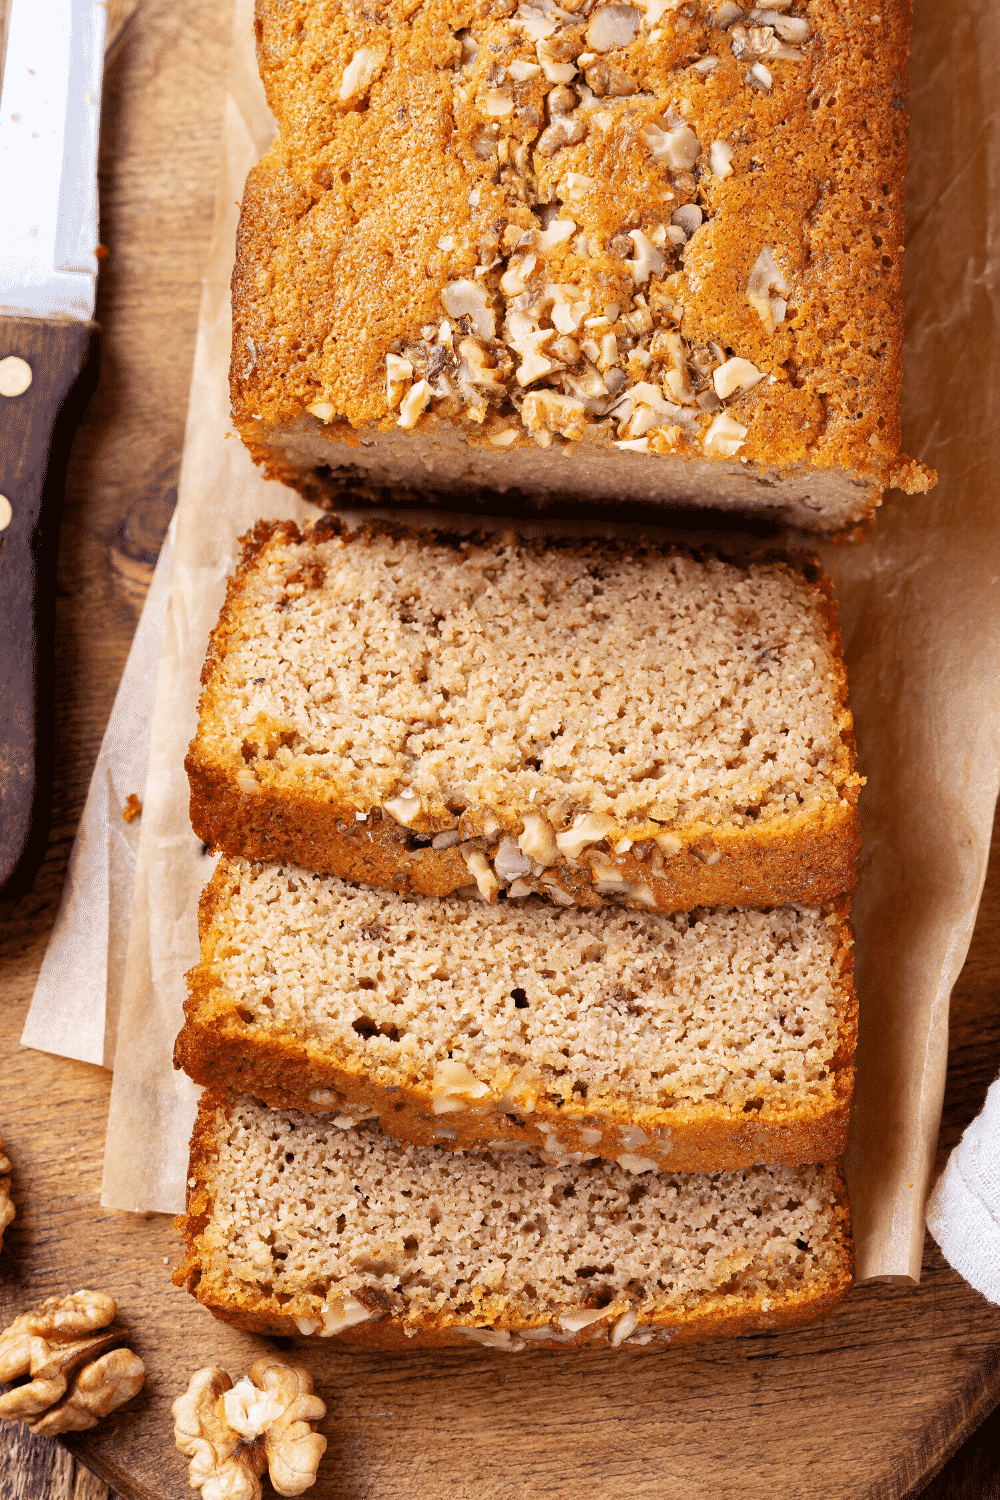 An overhead view of a banana bread loaf. Three pieces of banana bread are sliced and are lying in front of the loaf overlapping one another.